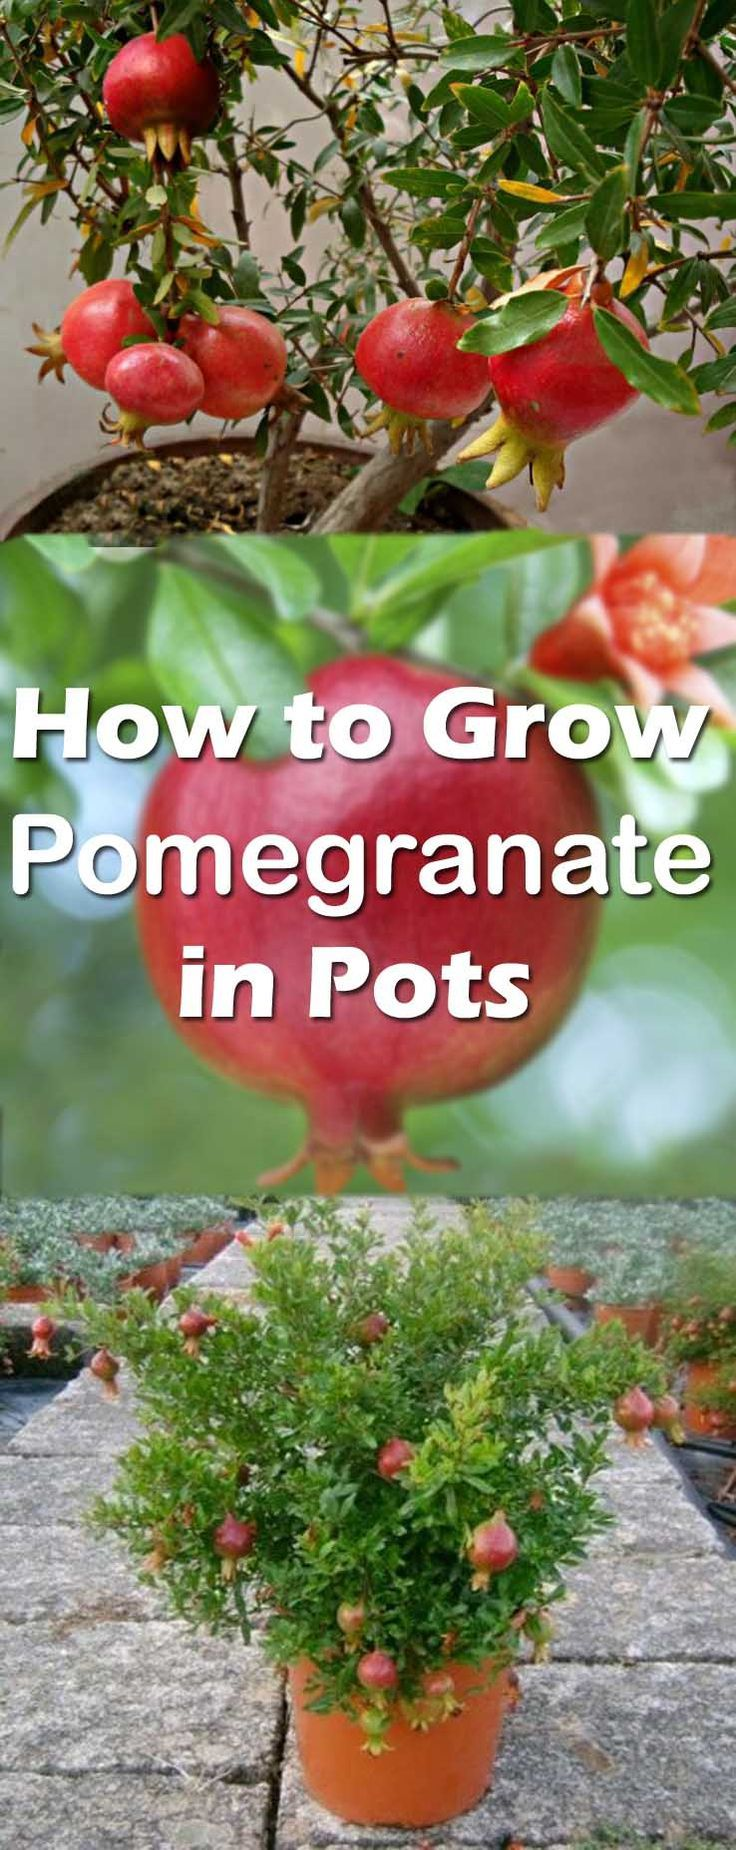 How To Grow Pomegranate Tree In Pot Complete Growing Guide Plants Growing Vegetables Potted Trees